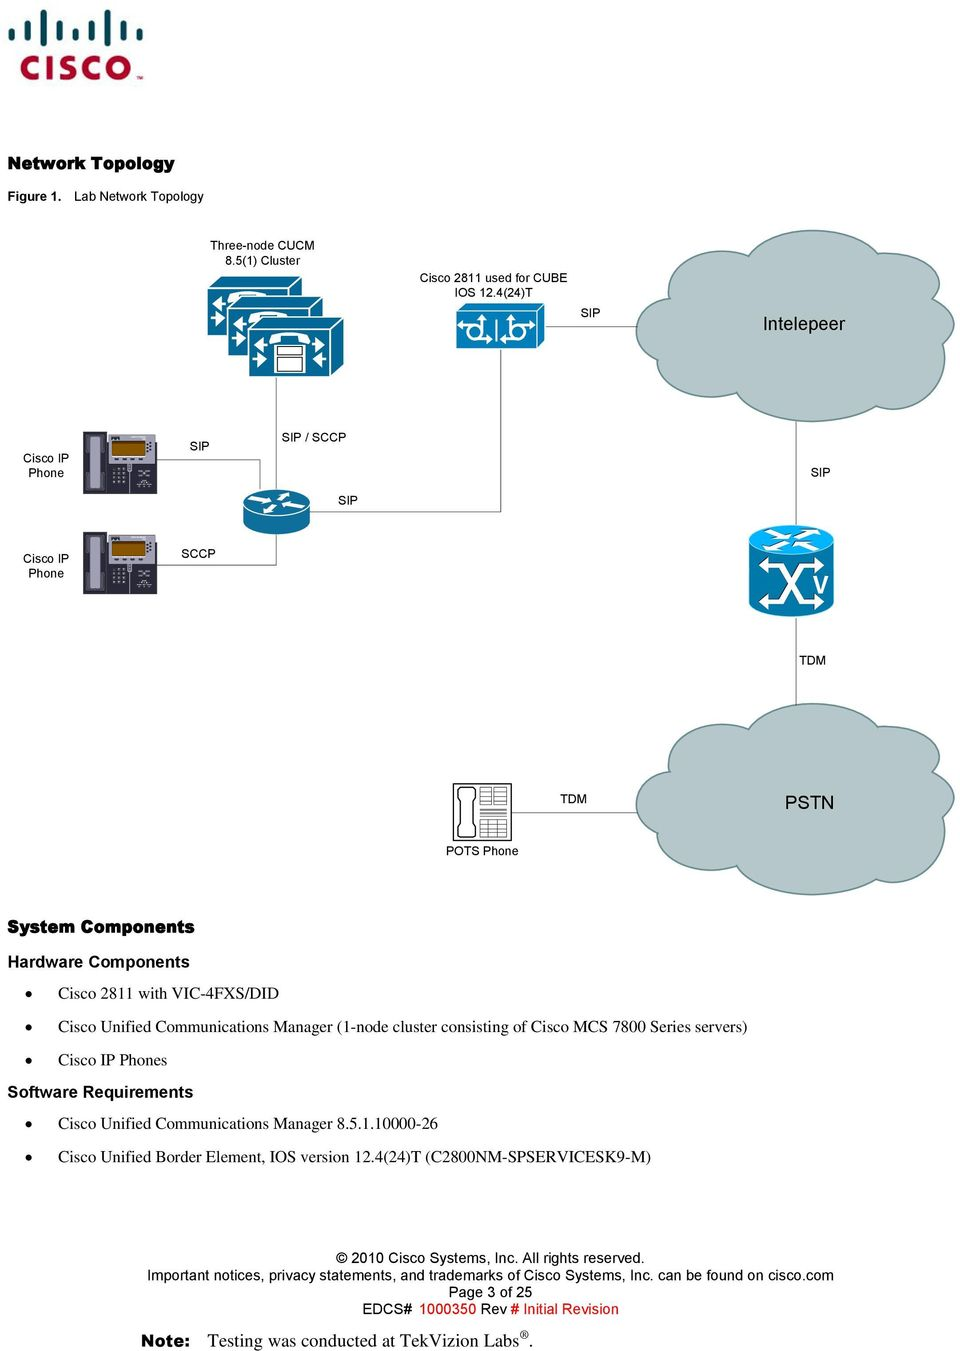 Components Cisco 2811 with VIC-4FXS/DID Cisco Unified Communications Manager (1-node cluster consisting of Cisco MCS 7800 Series servers)